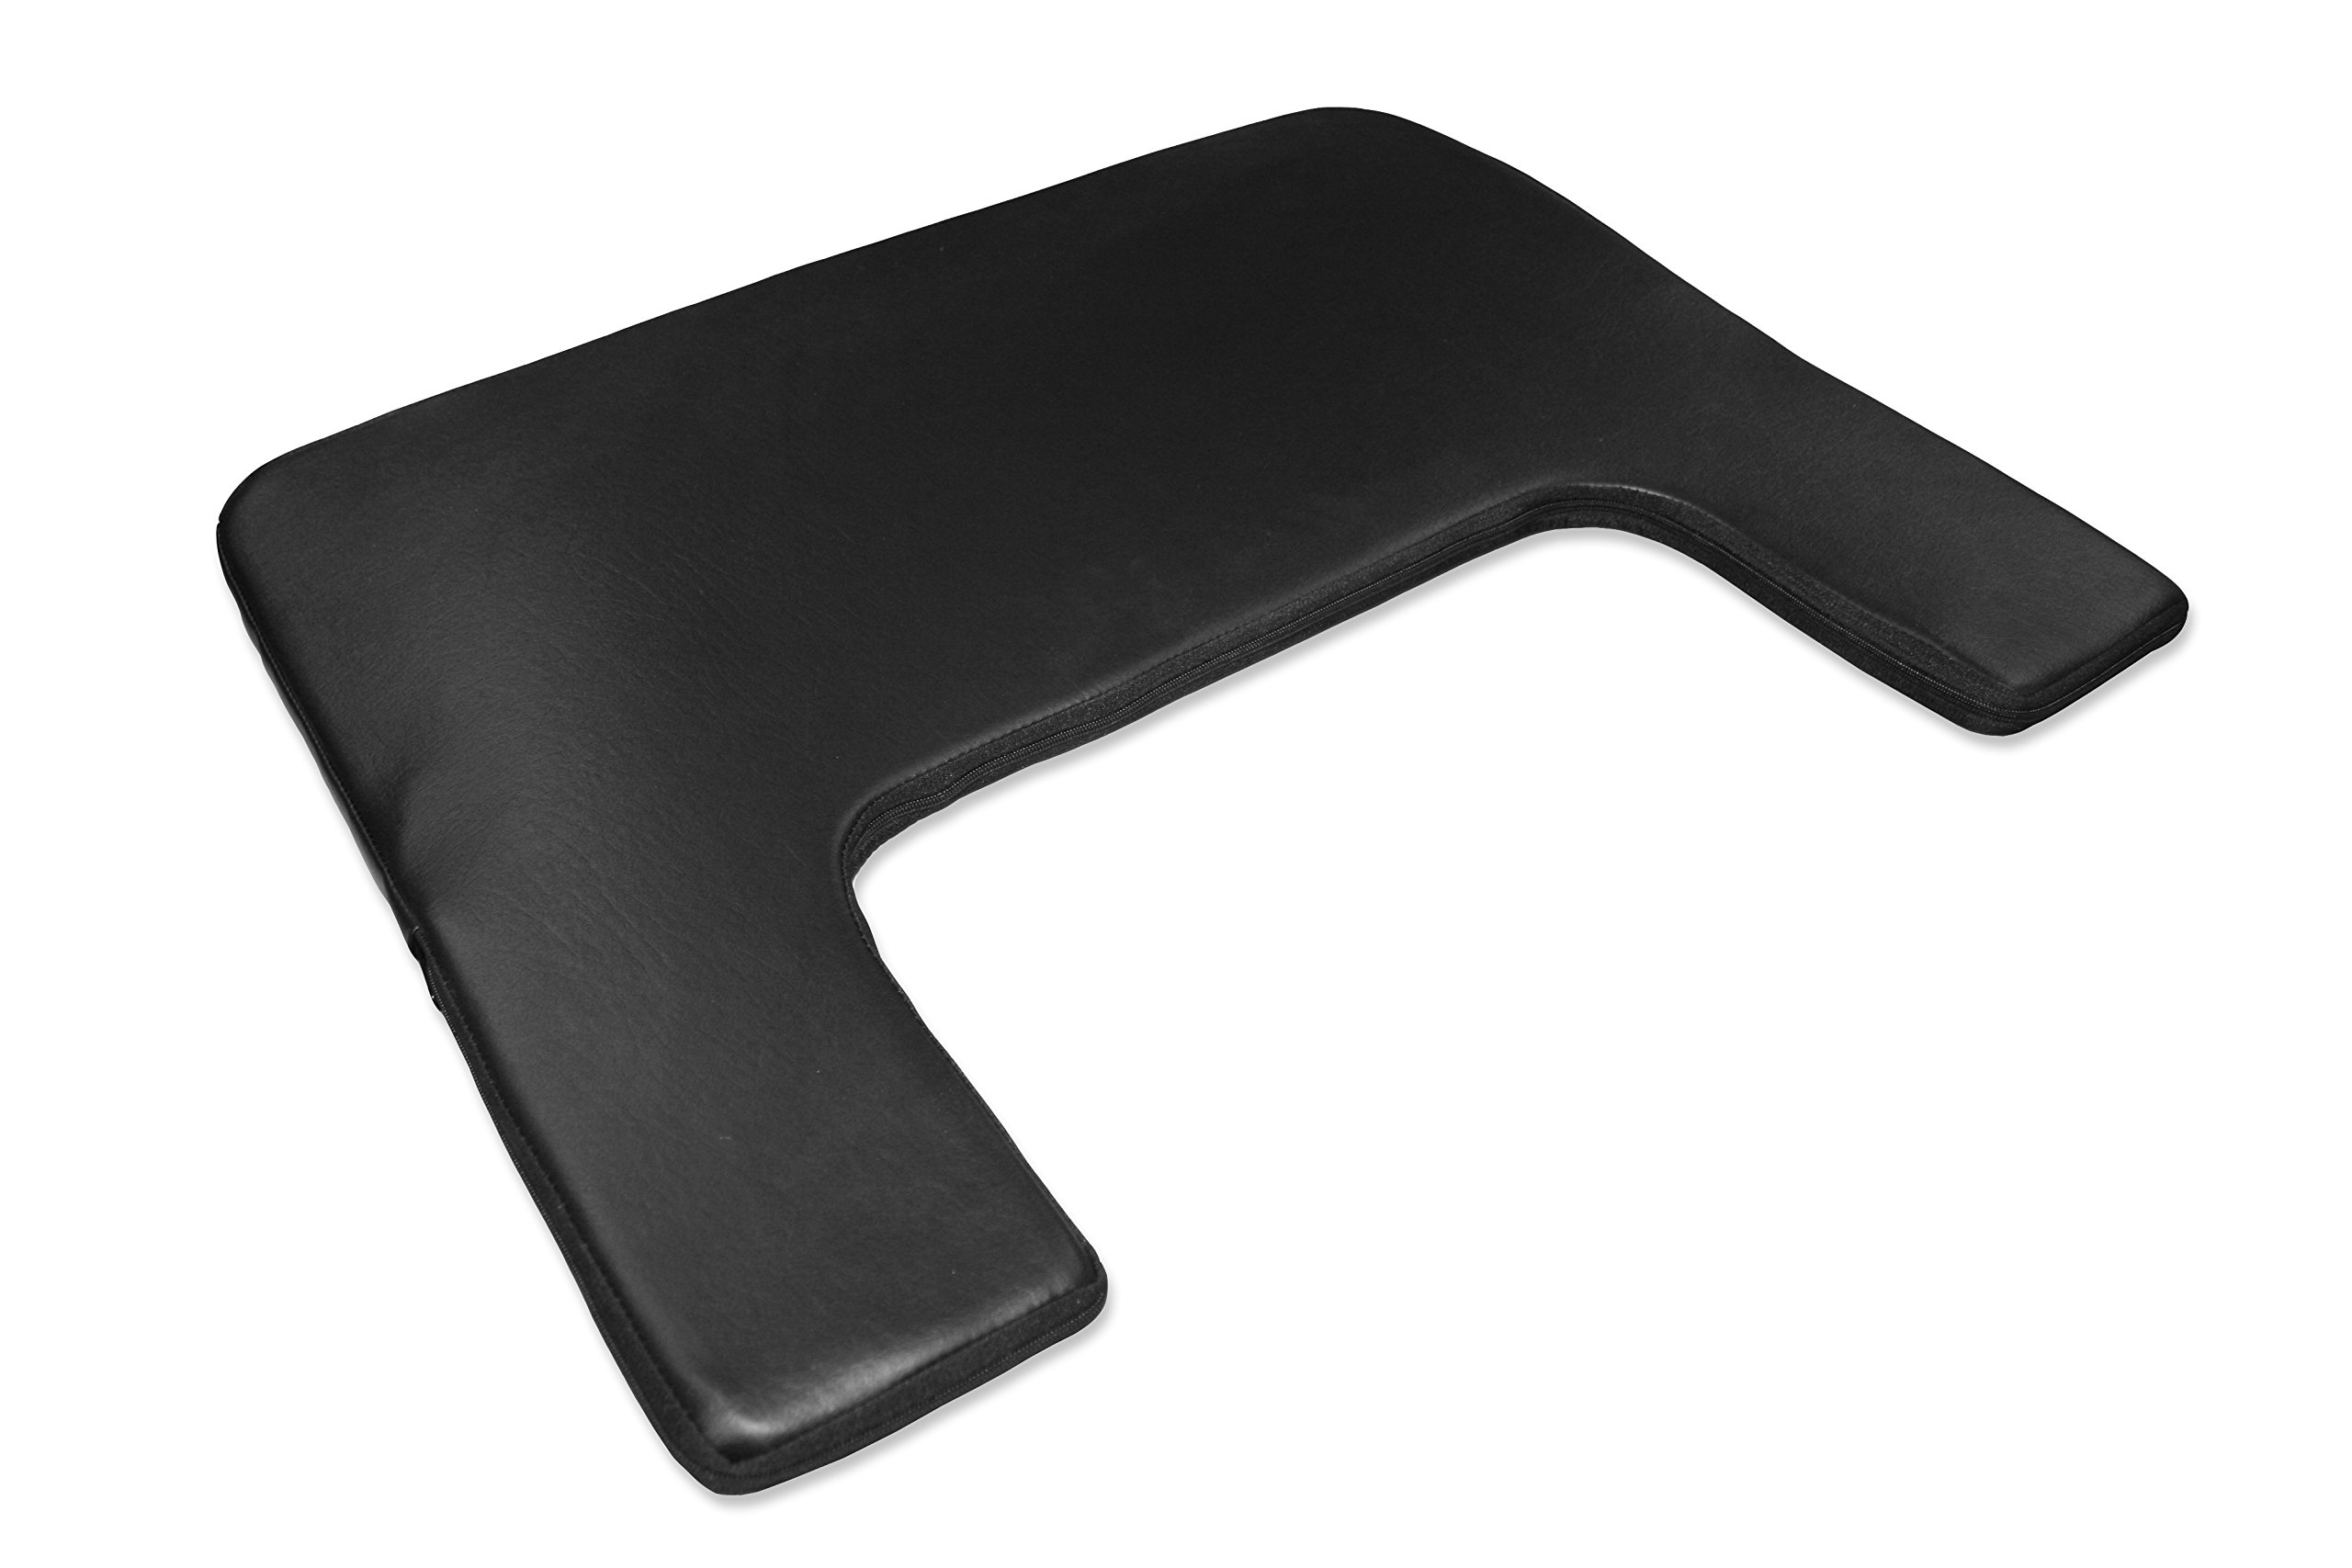 Rehabilitation Advantage Wheelchair Tray Padding, Vinyl Cover and Foam, Adult Size